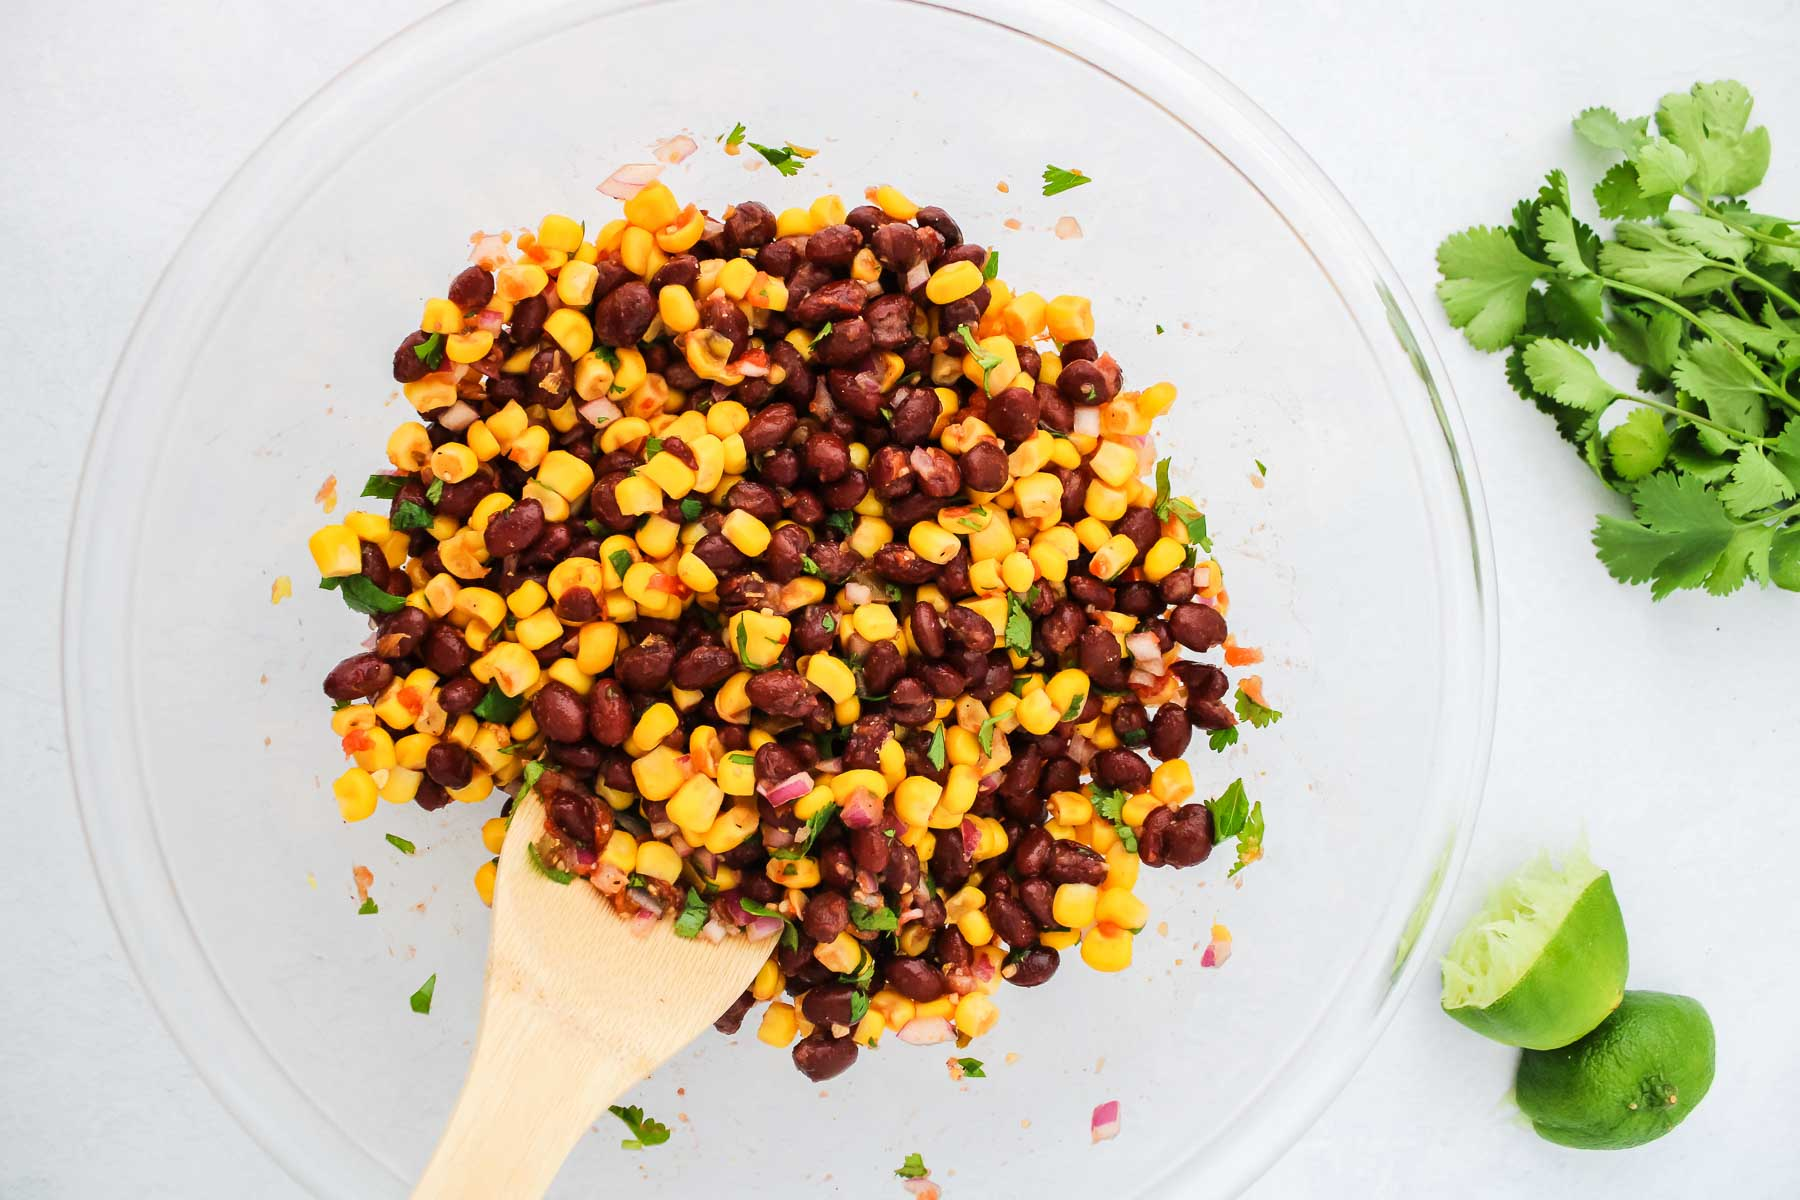 Homemade black bean and corn salsa in clear bowl with cilantro and limes.